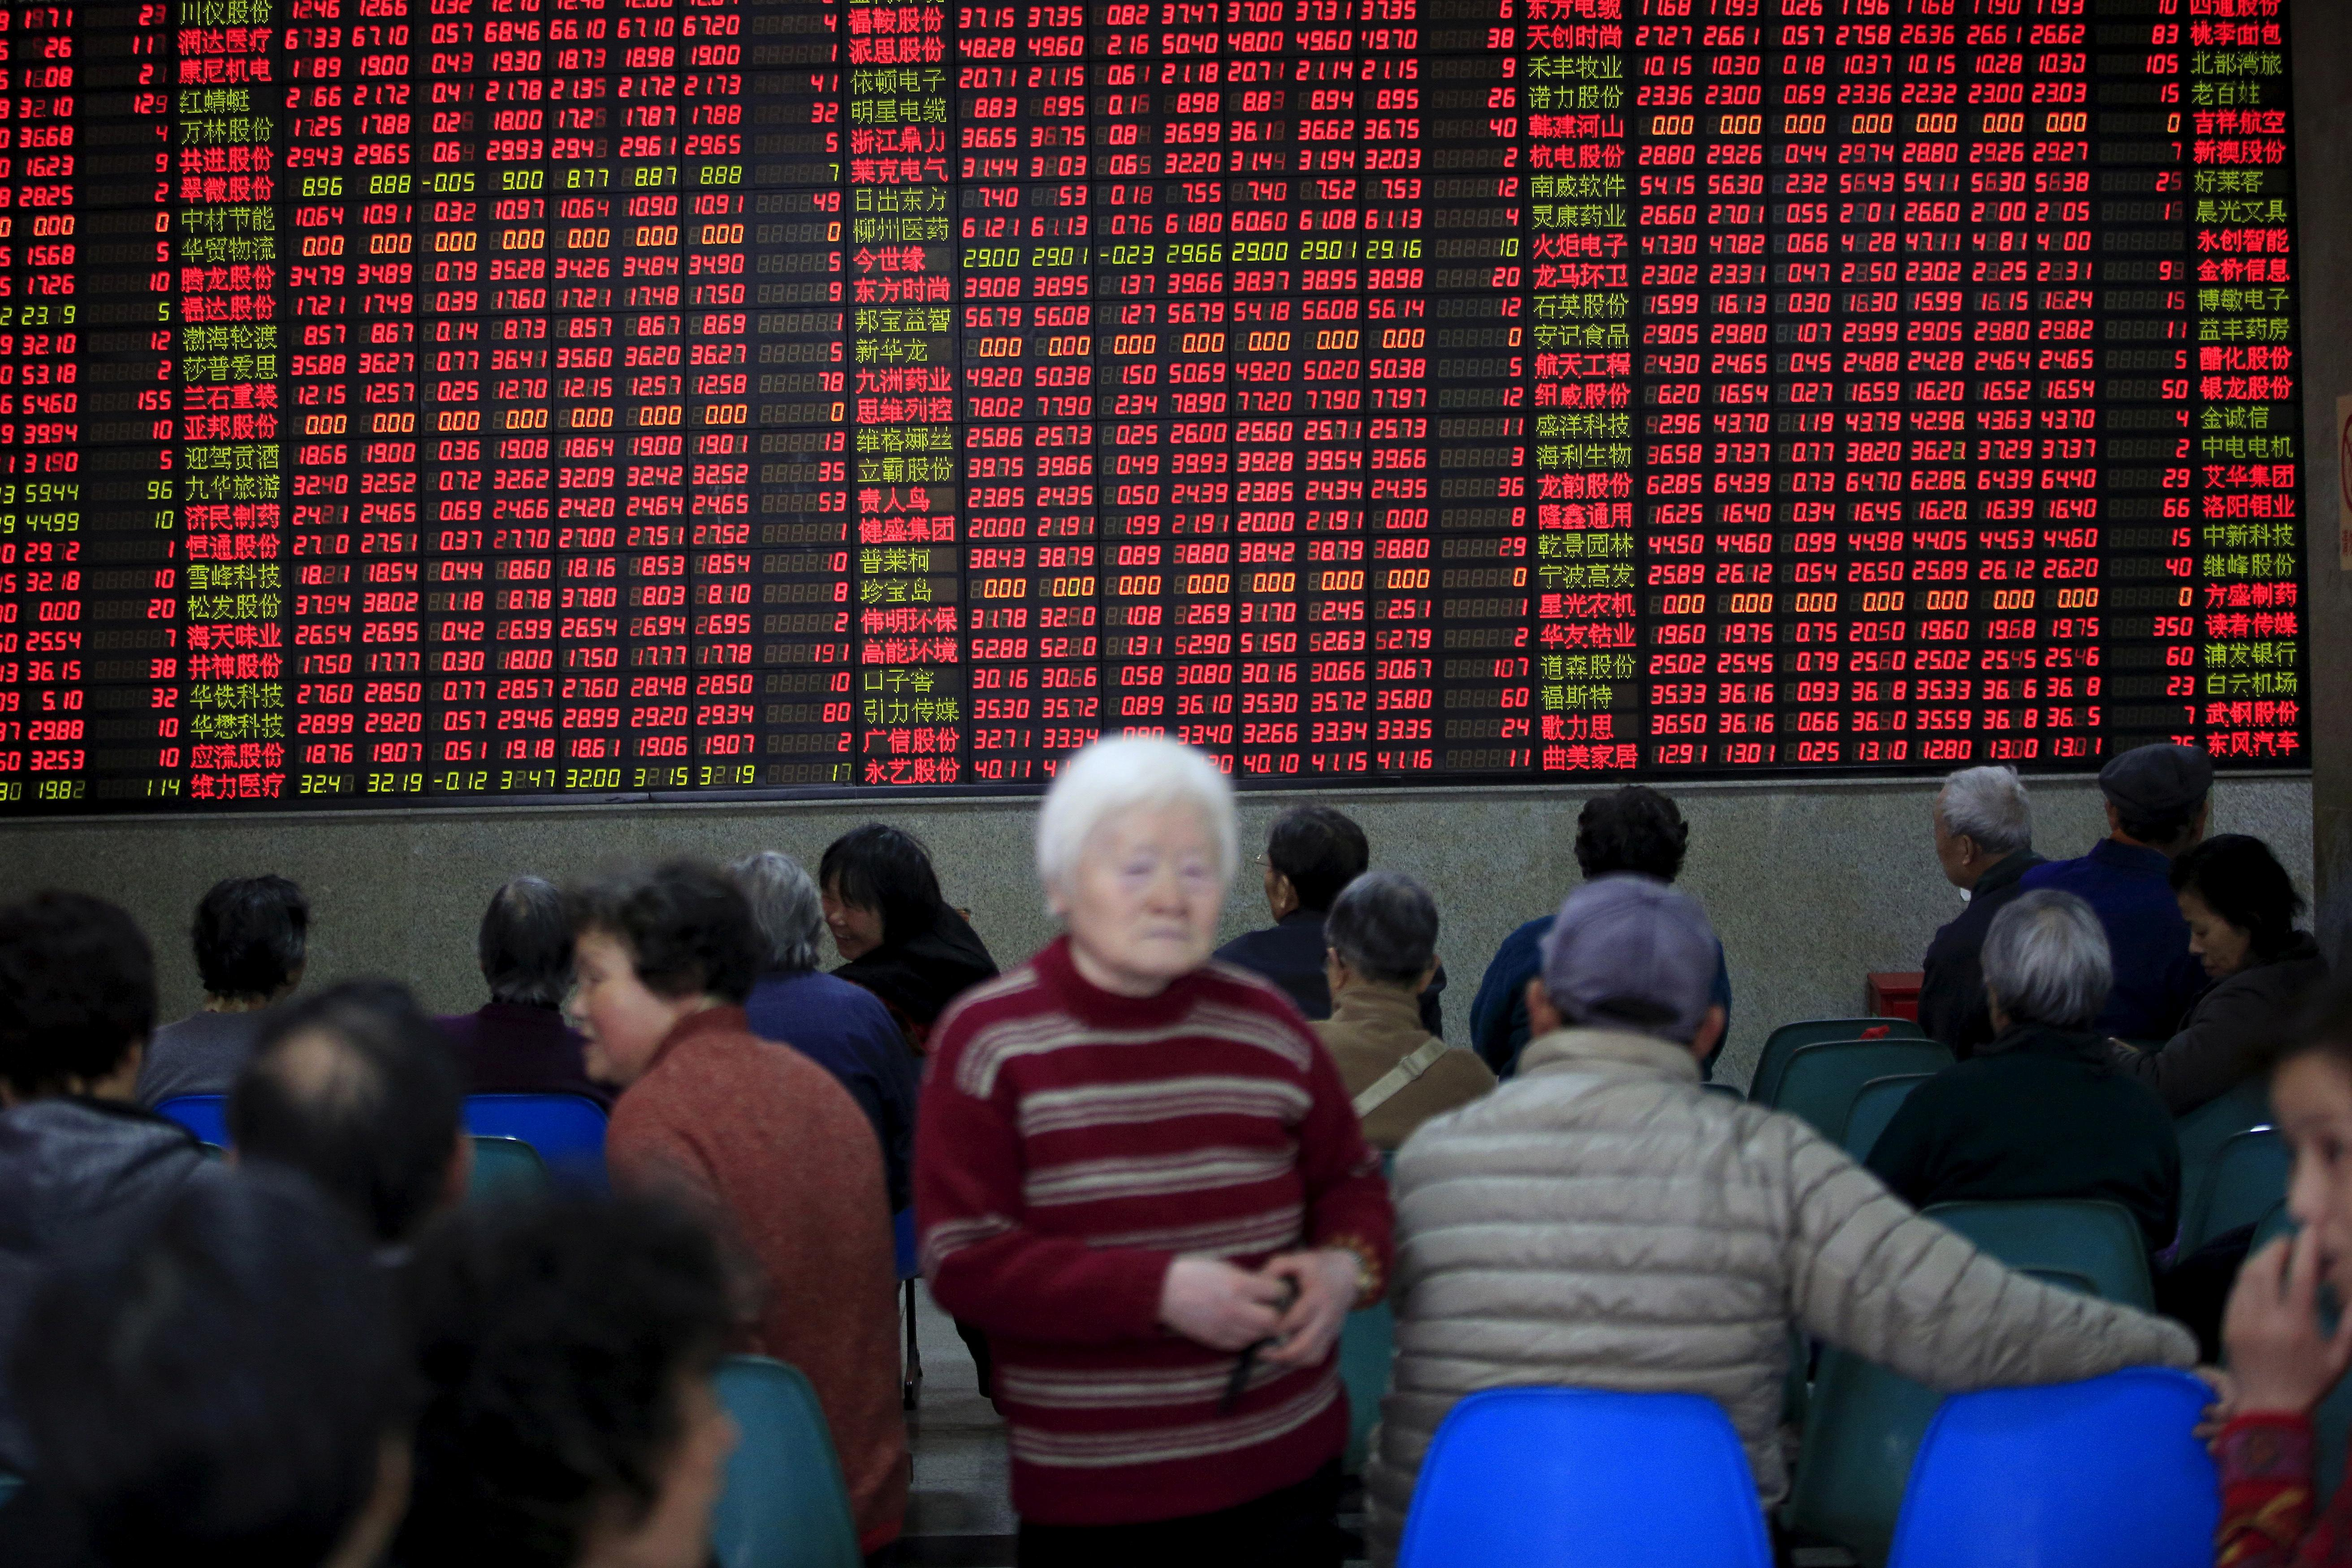 Shanghai exchange says has ended verbal guidance in market to ensure fairness